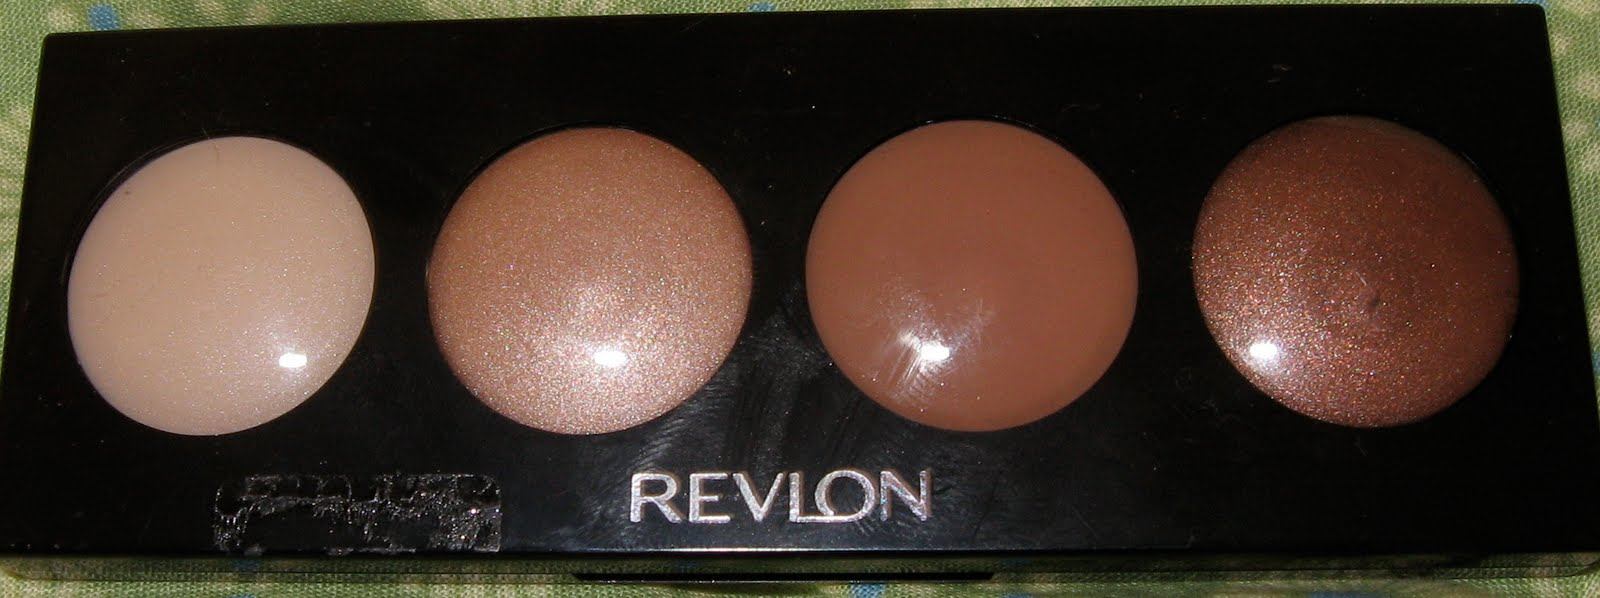 This is a Revlon Illuminance creme shadow in the color Not Just Nudes.